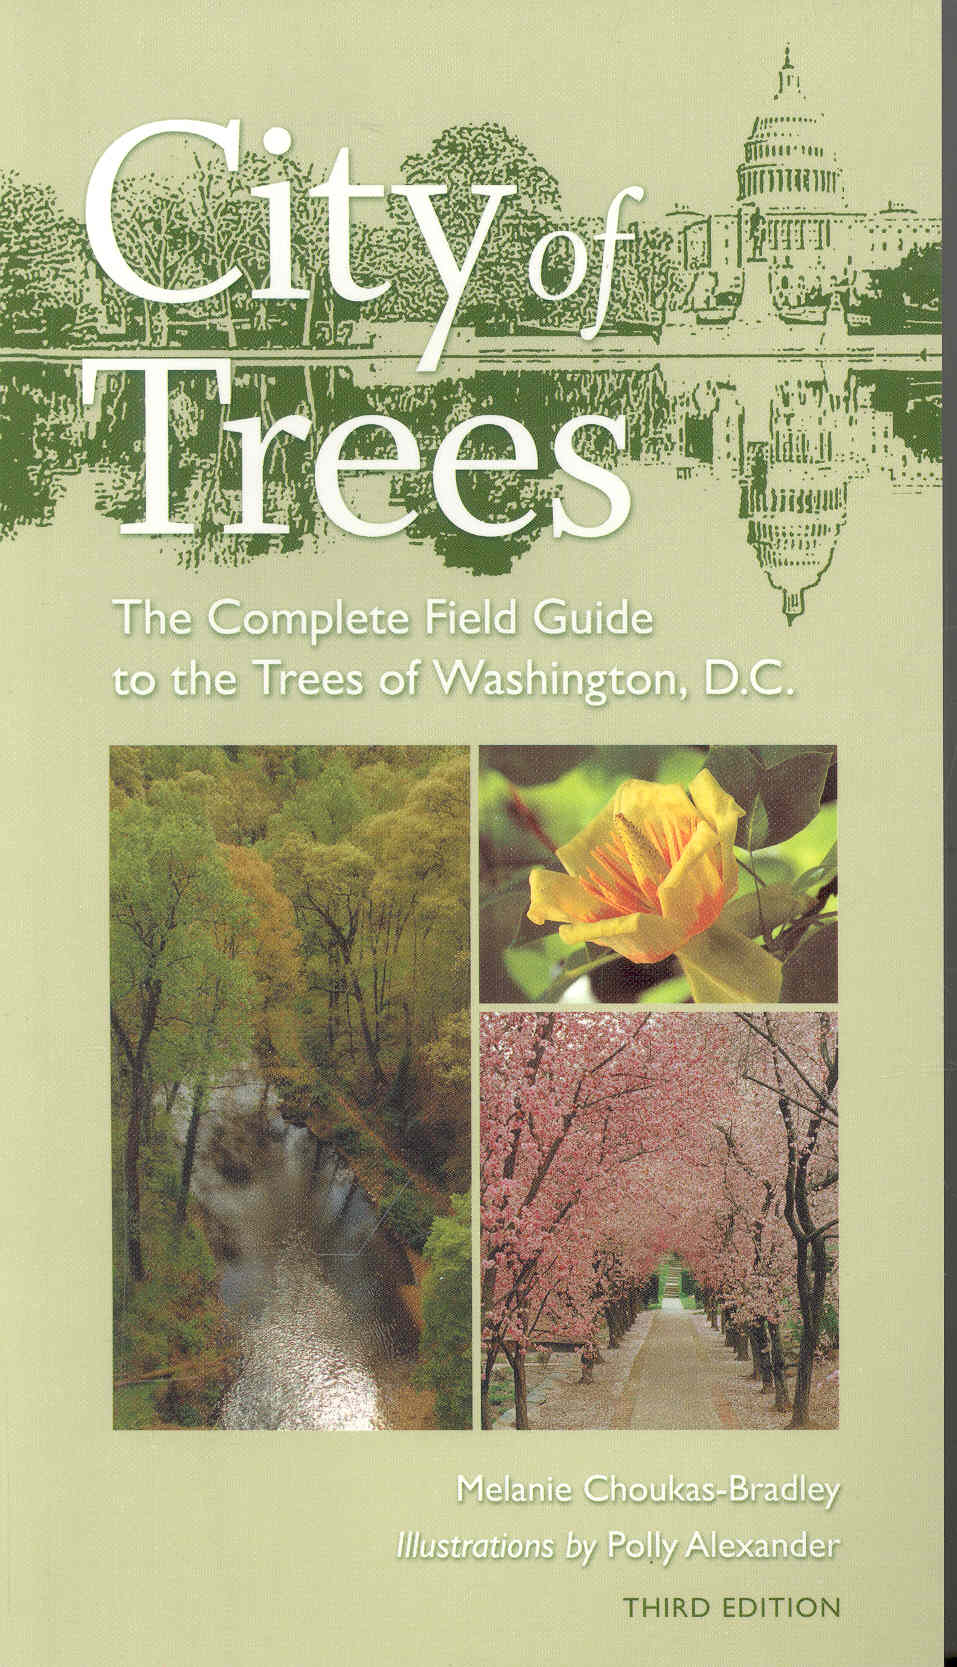 City of Trees By Choukas-Bradley, Melanie/ Alexander, Polly (ILT)